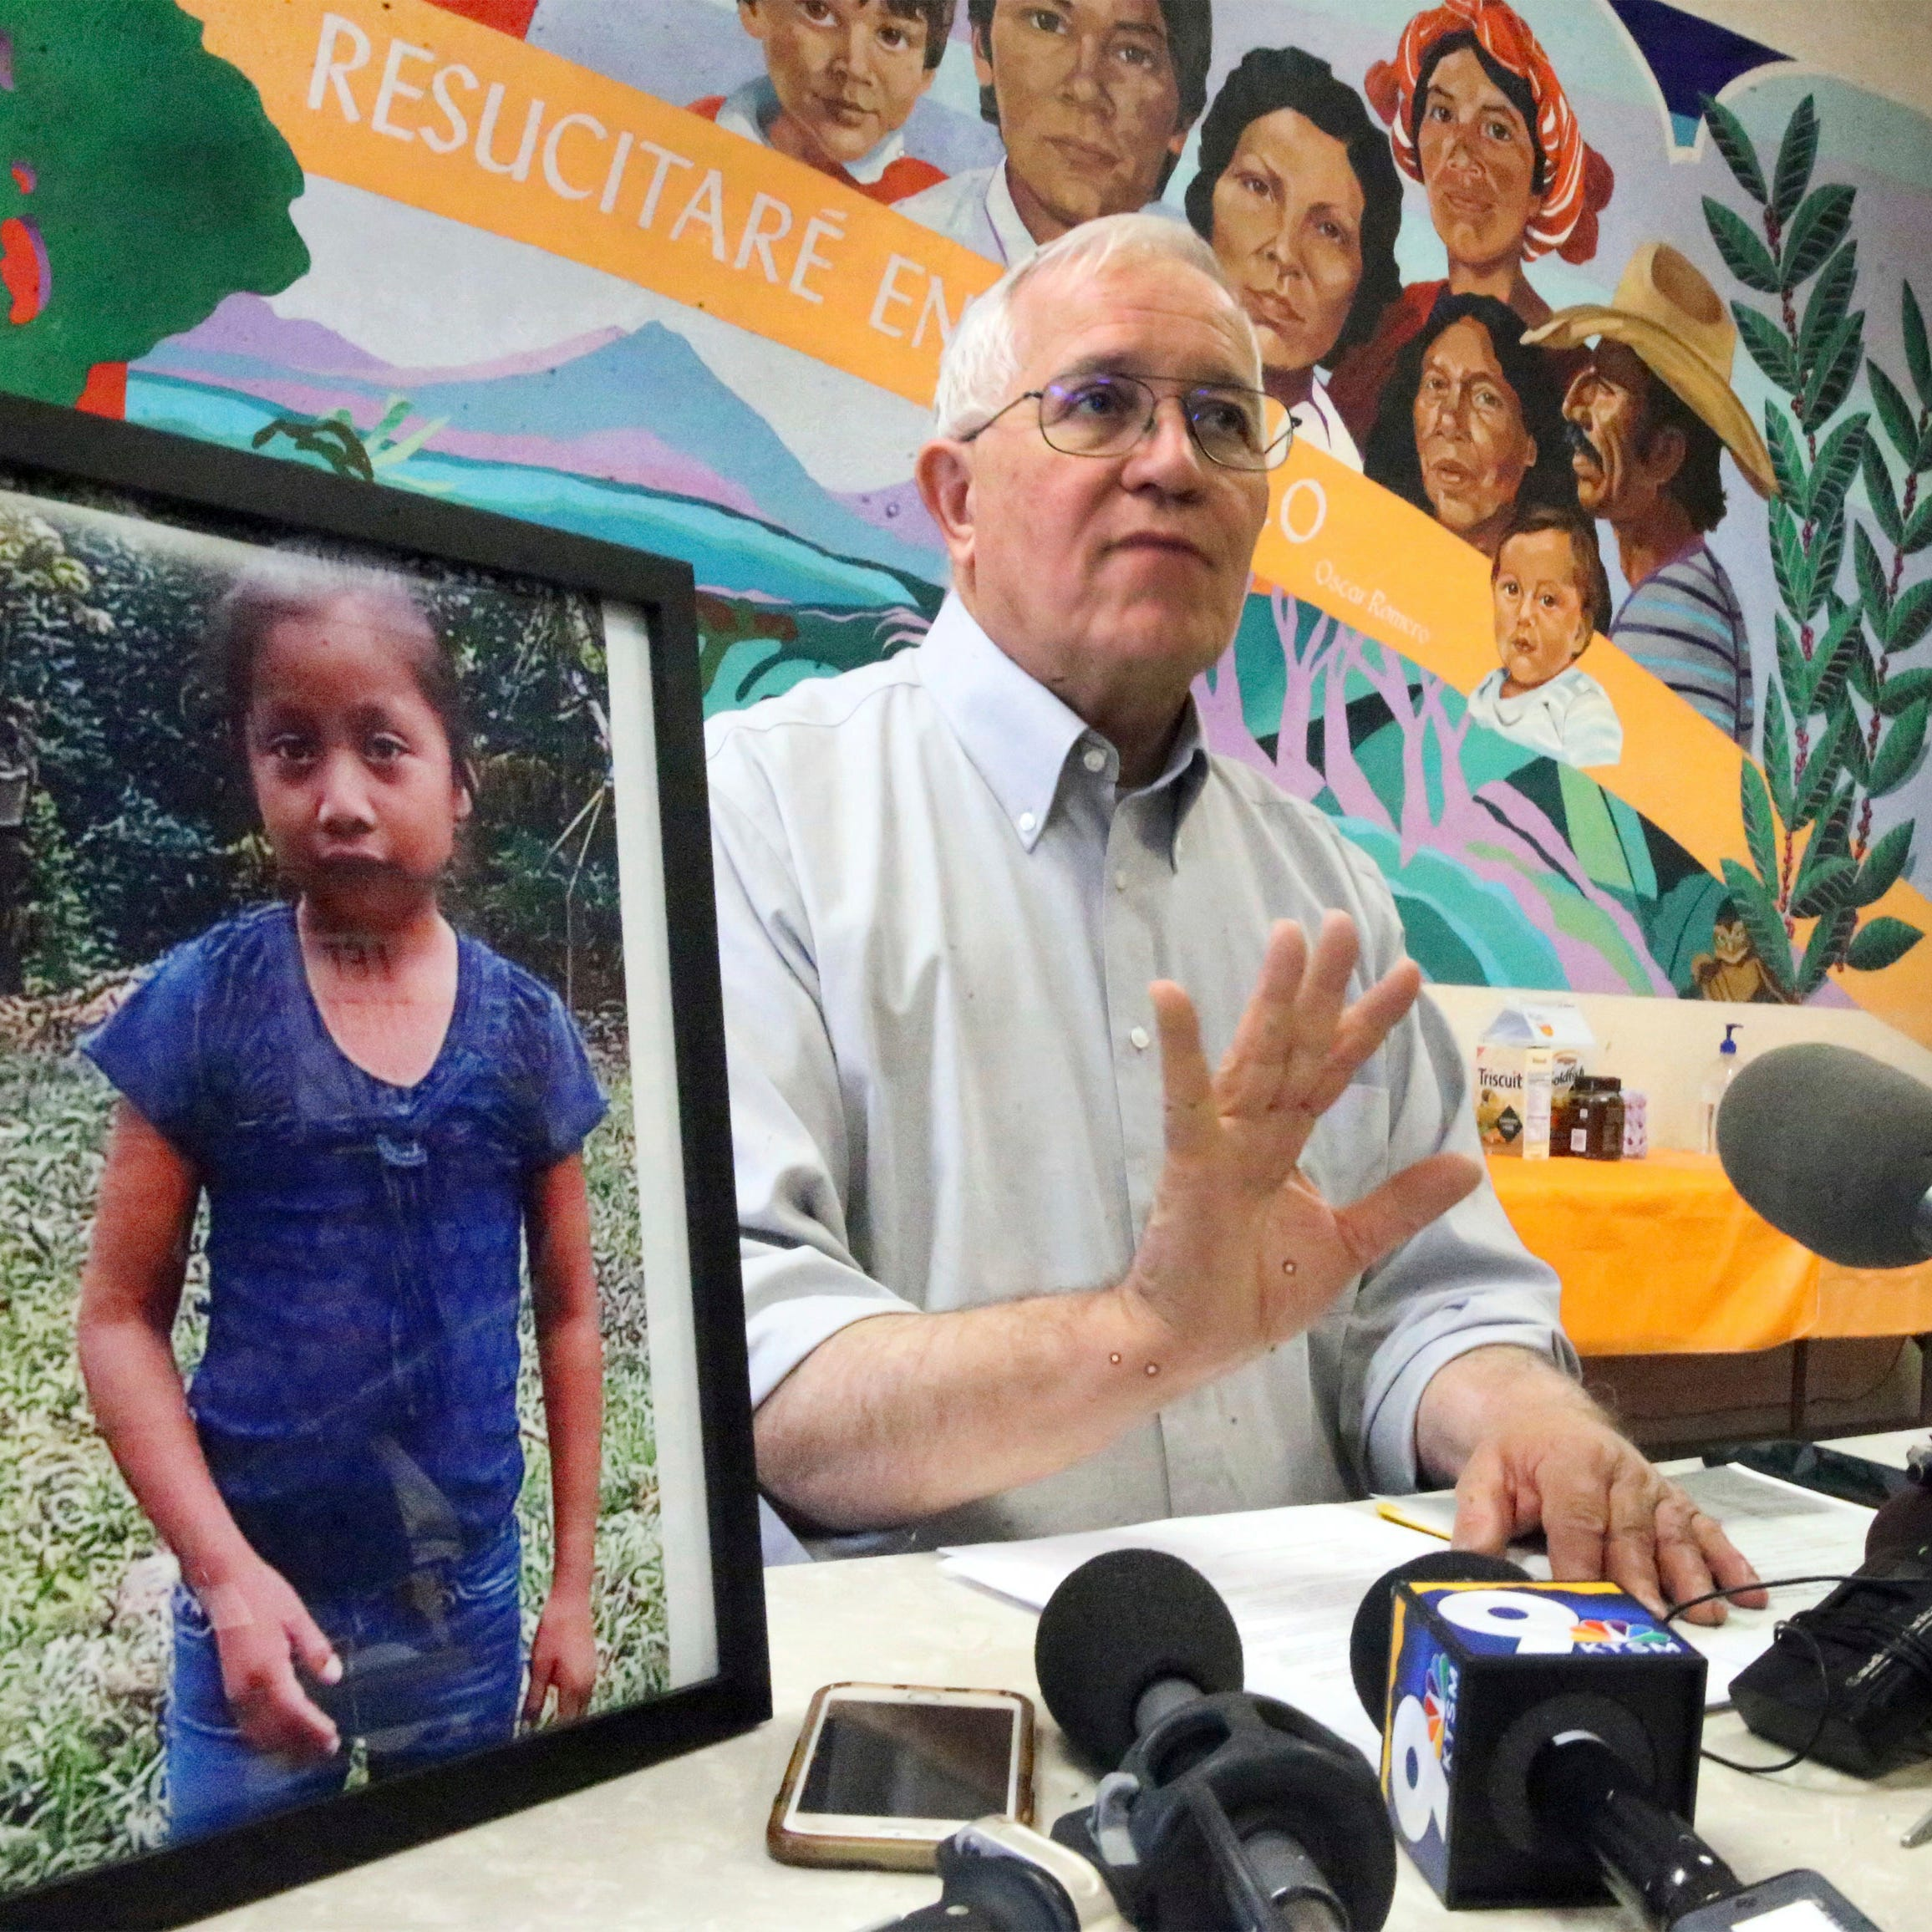 Congress told it can't interview agents who detained 7-year-old migrant girl who died